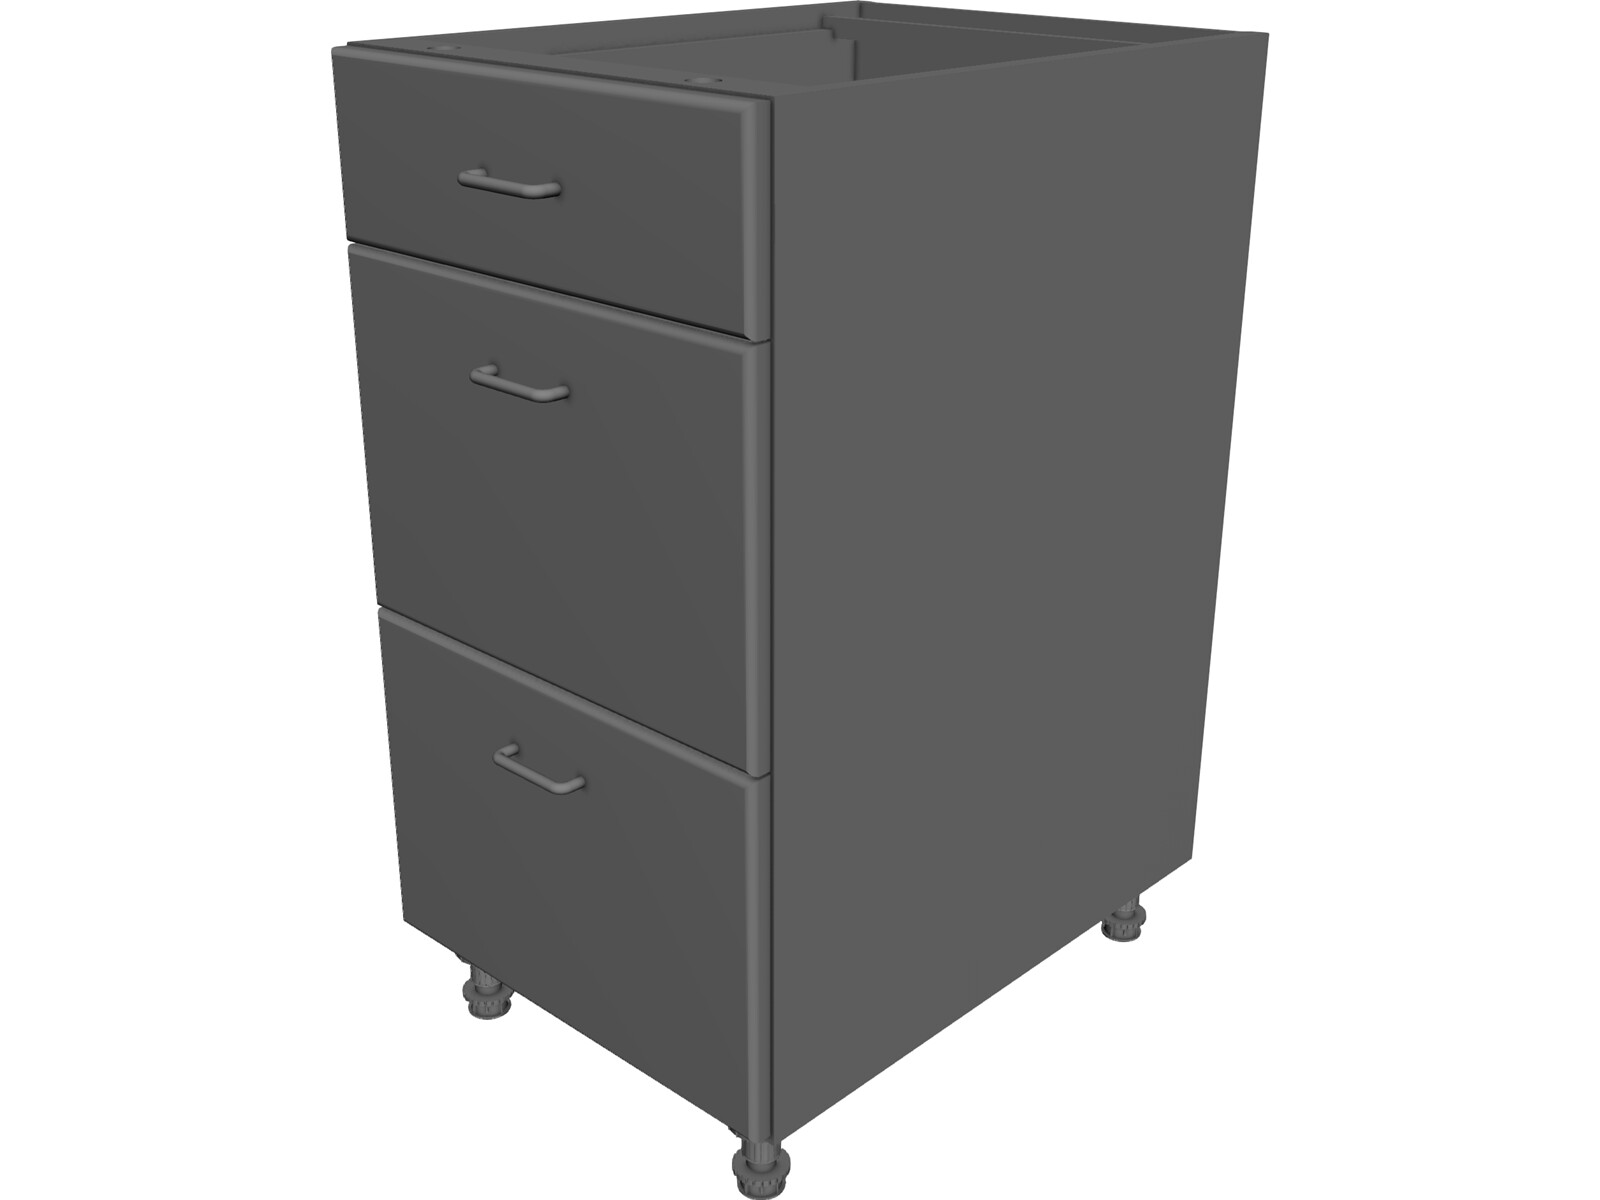 3 Drawer Cabinet 3D CAD Model